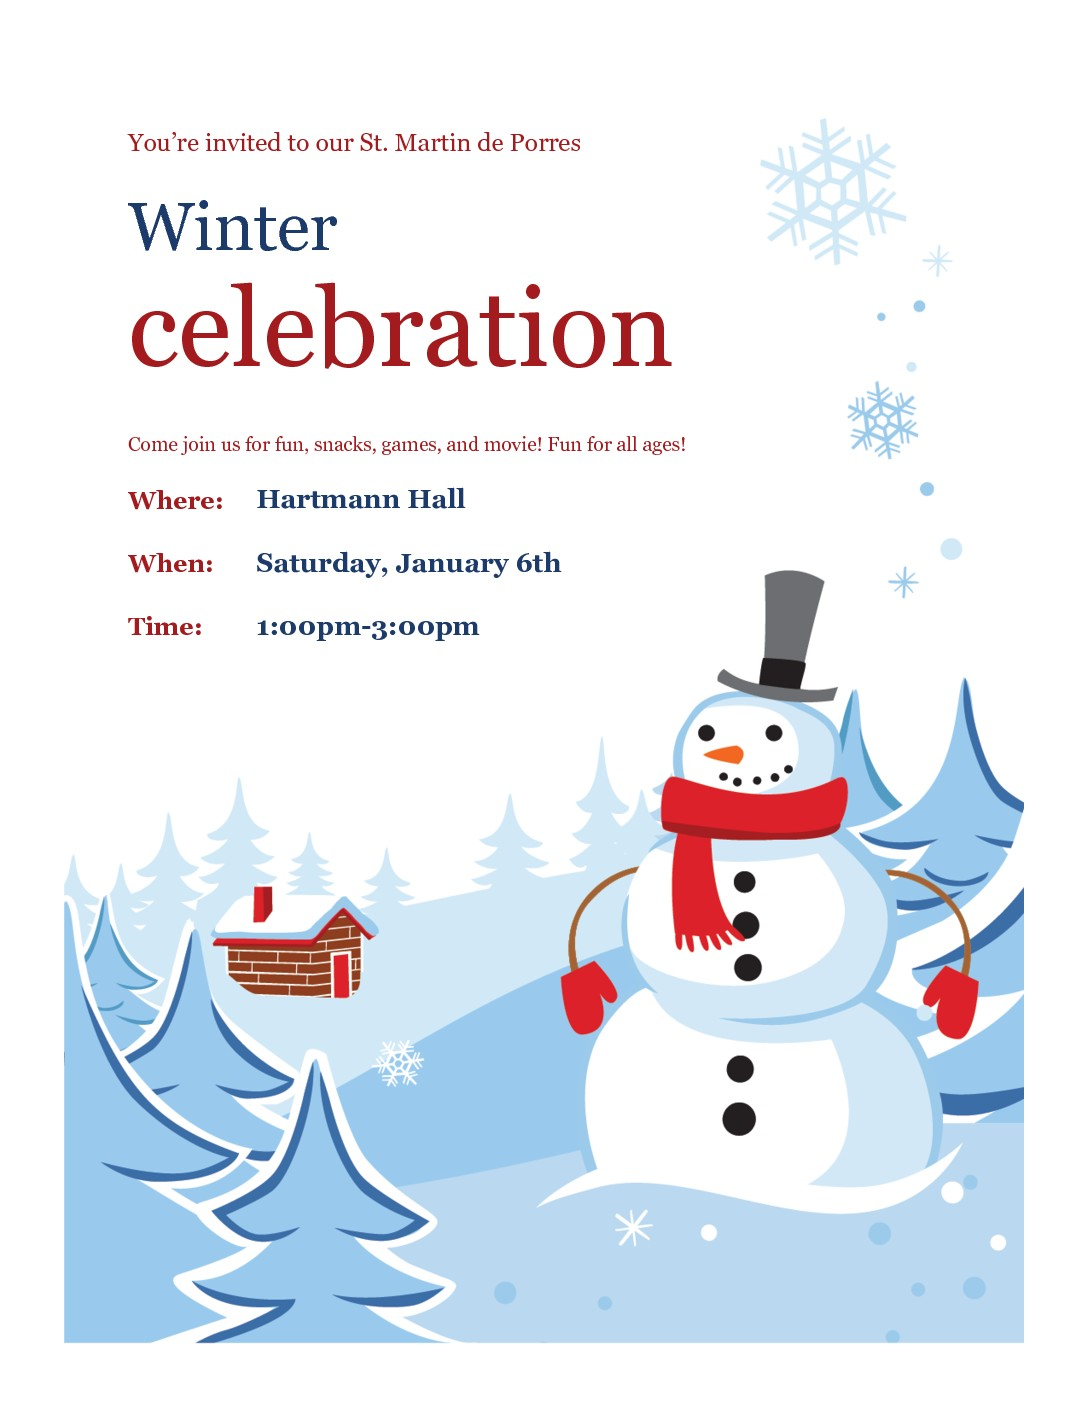 St. Martin de Porres Parish: Winter Celebration.